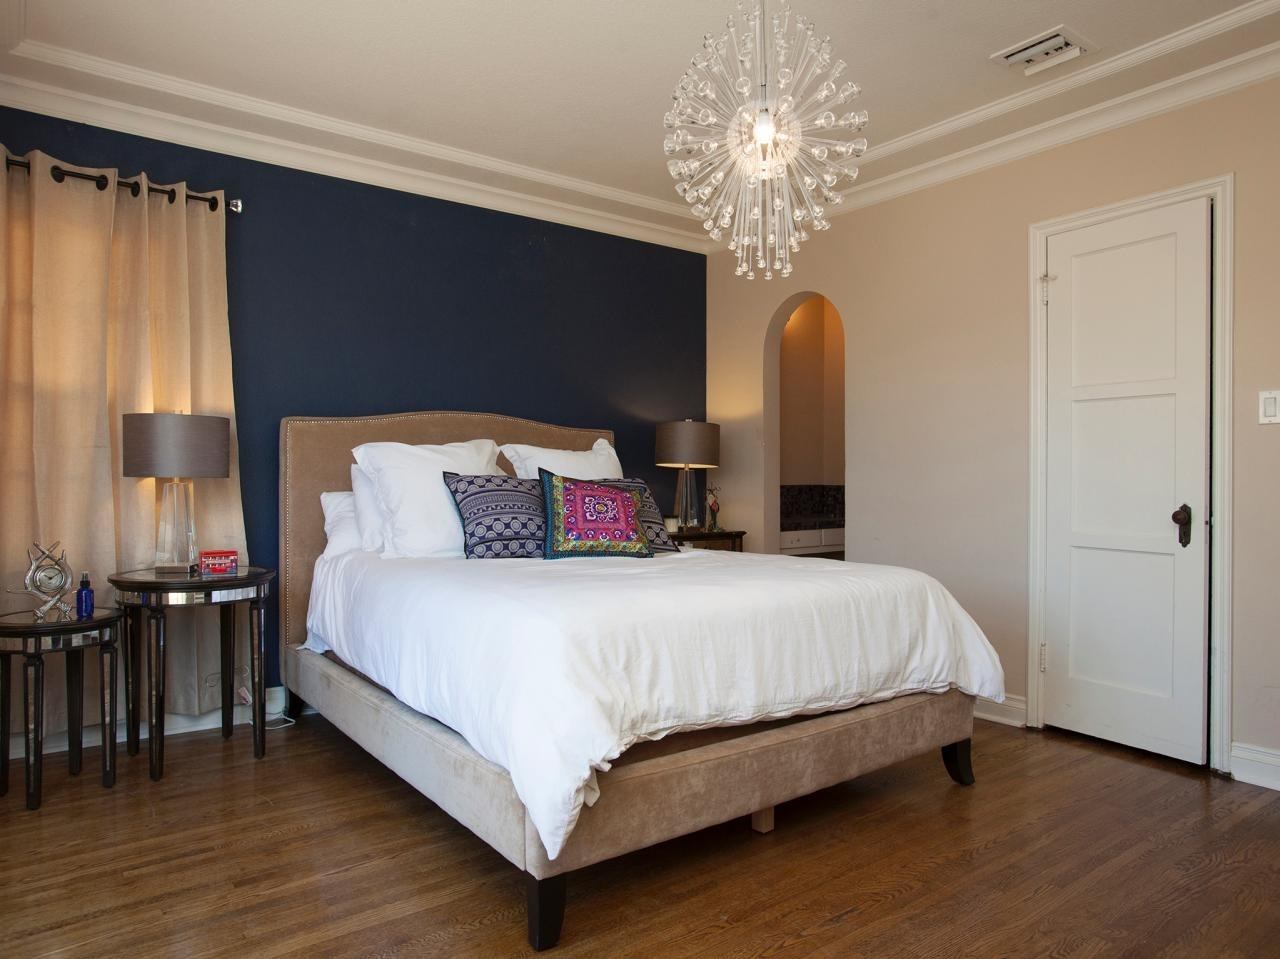 Bedroom | Dark Blue Wall Accent With Burlywood Color Base Inside Most Popular Wall Accents For Tan Room (View 1 of 15)